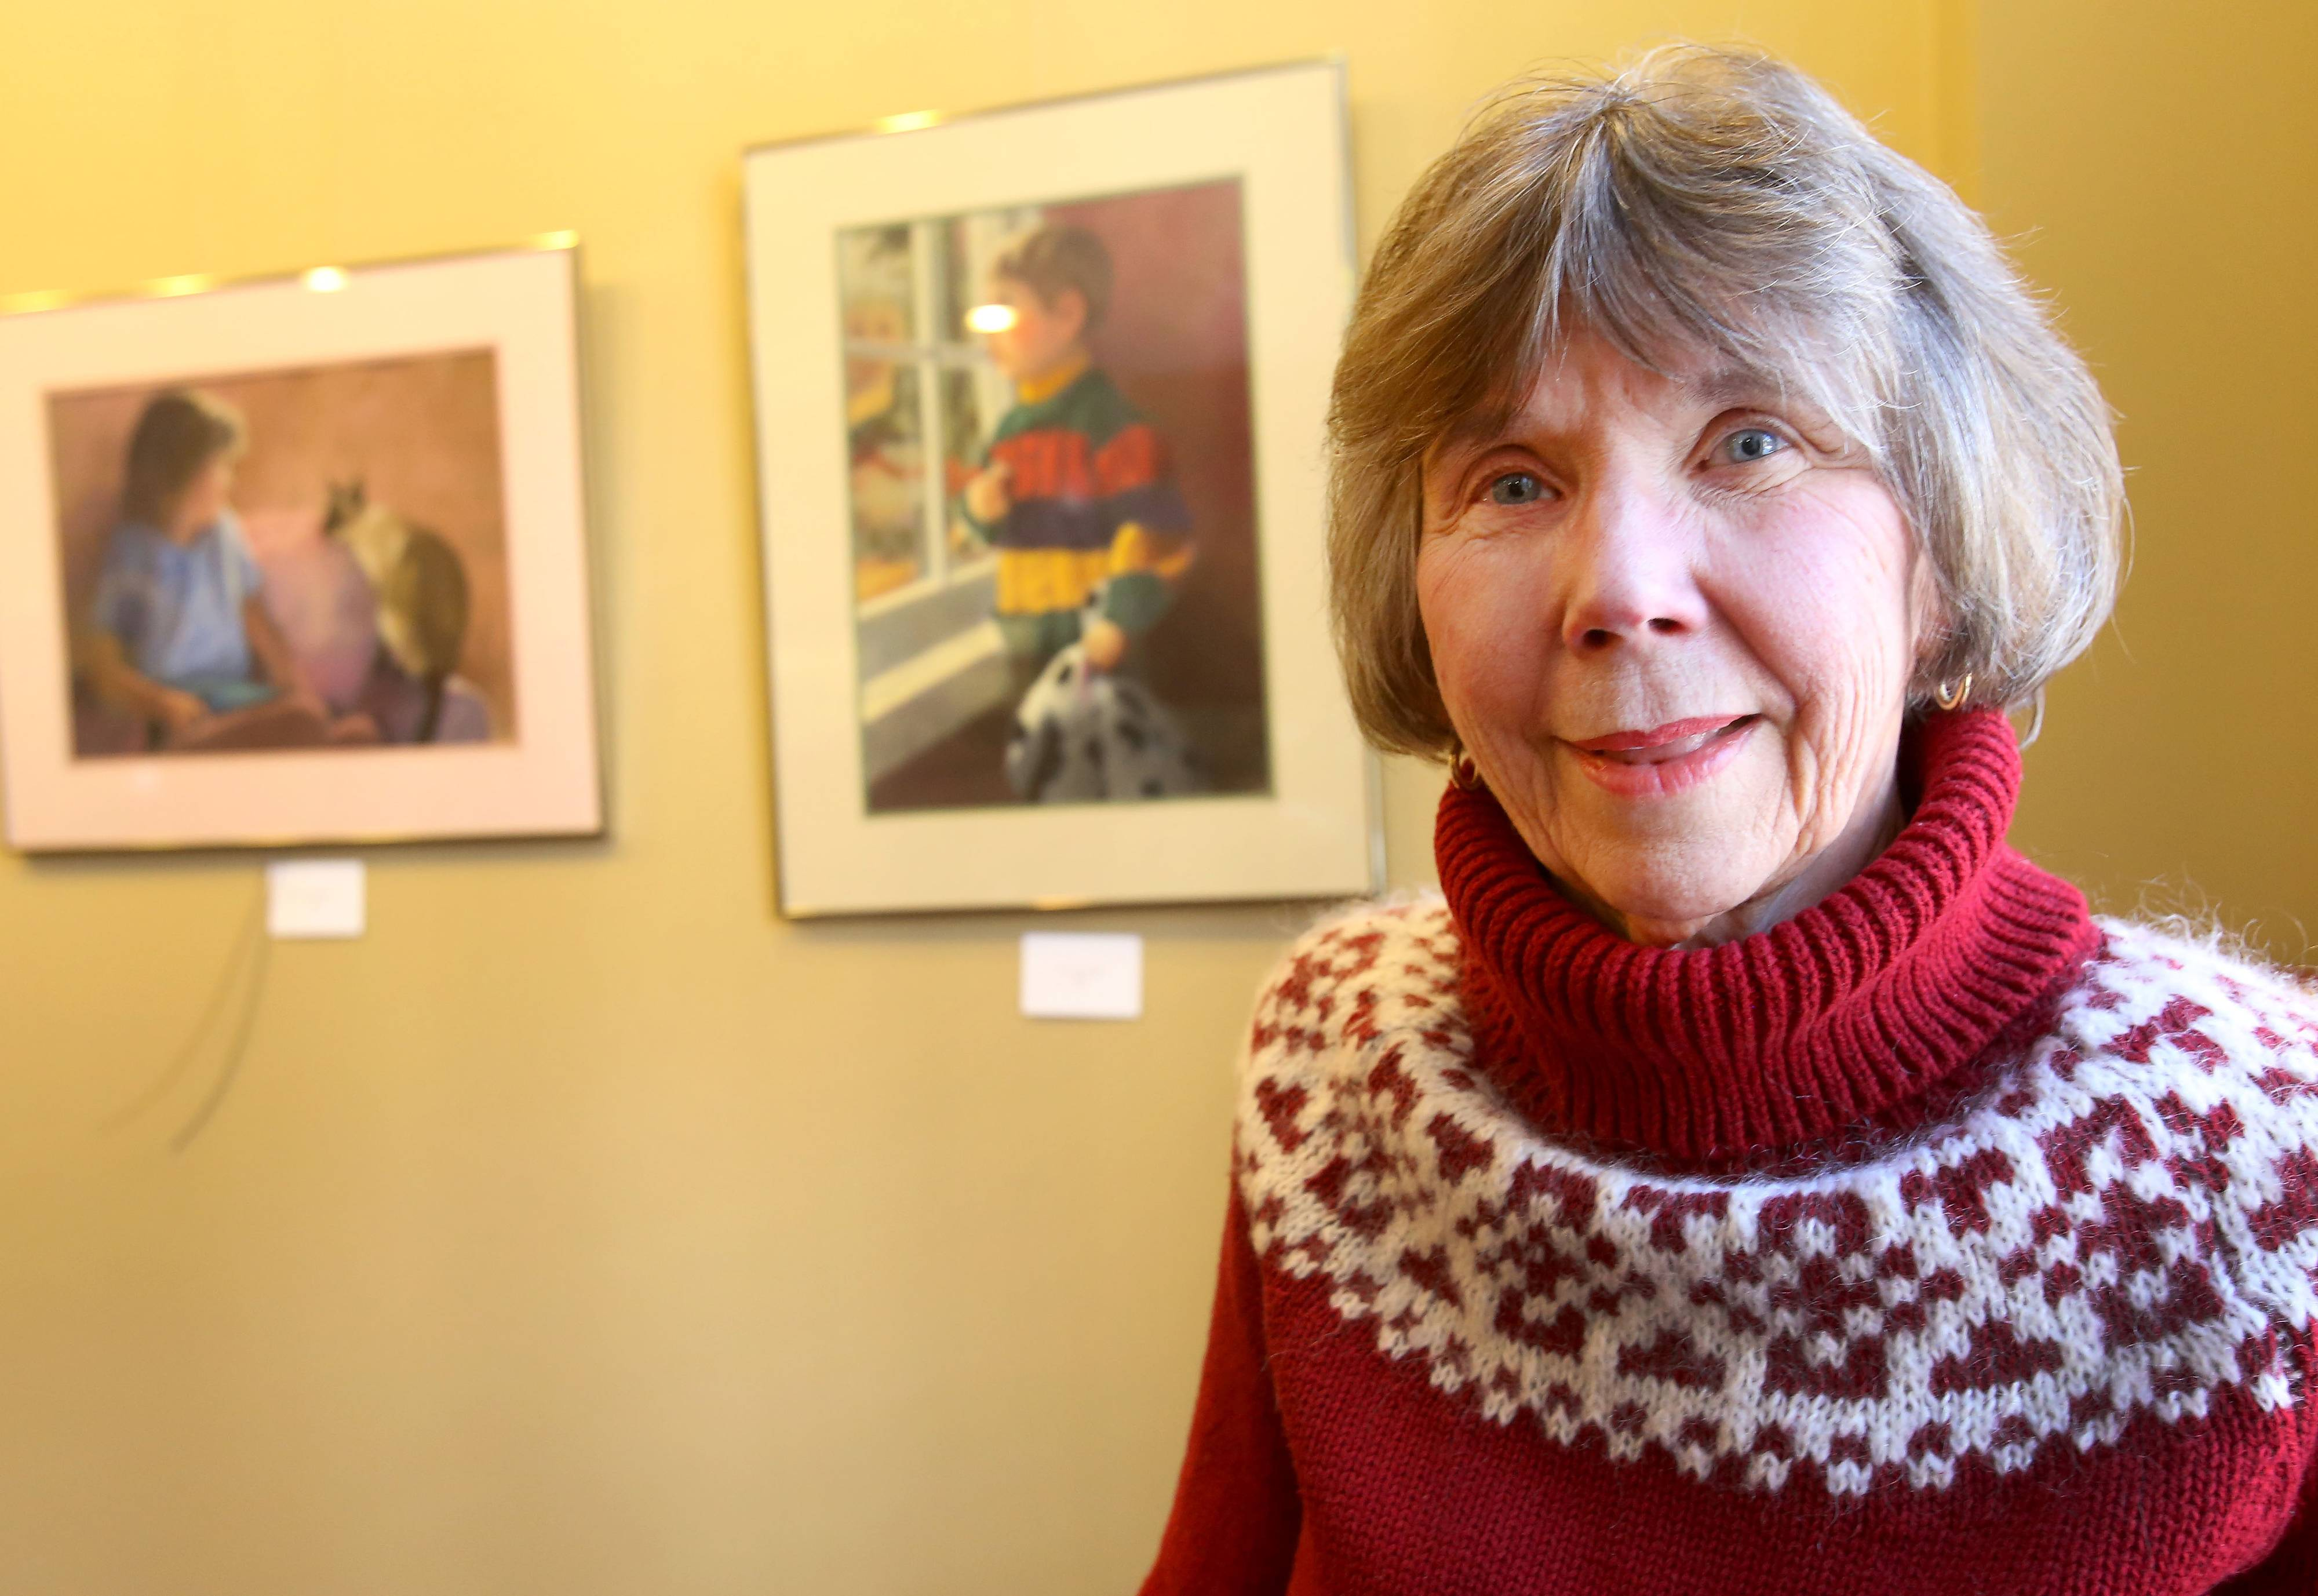 Glen Ellyn artist Jean Griffin, who has exhibited her work locally and nationally, does her portraits of children as a benefit for Young Men's Educational Network of Chicago.